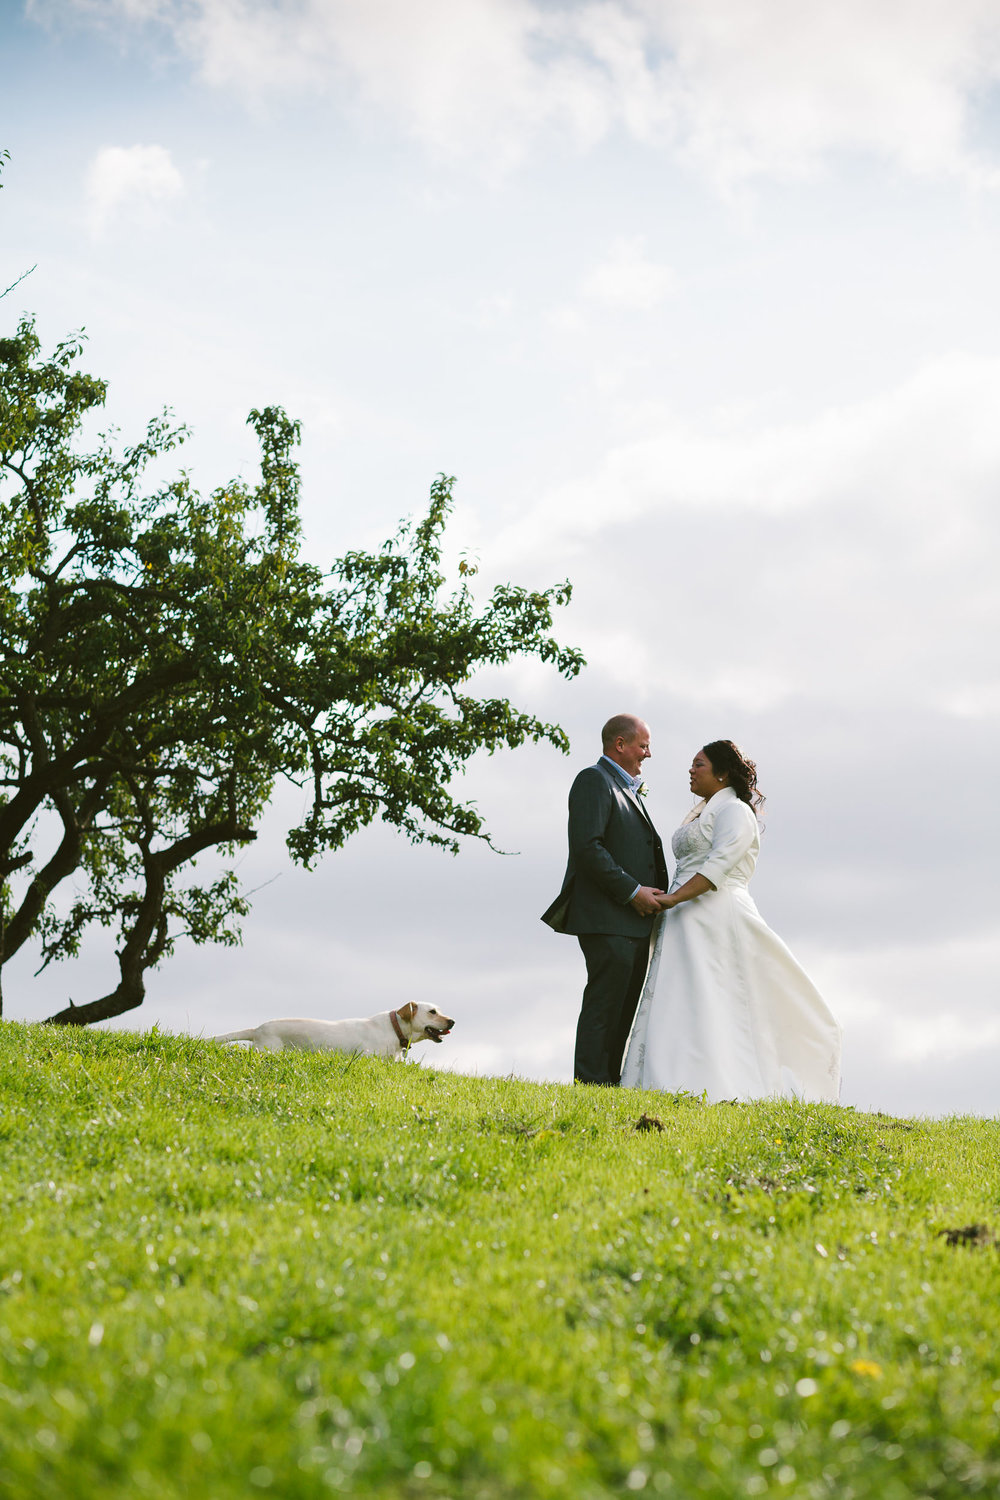 Bride and groom in romantic pose while dog photo bombs them